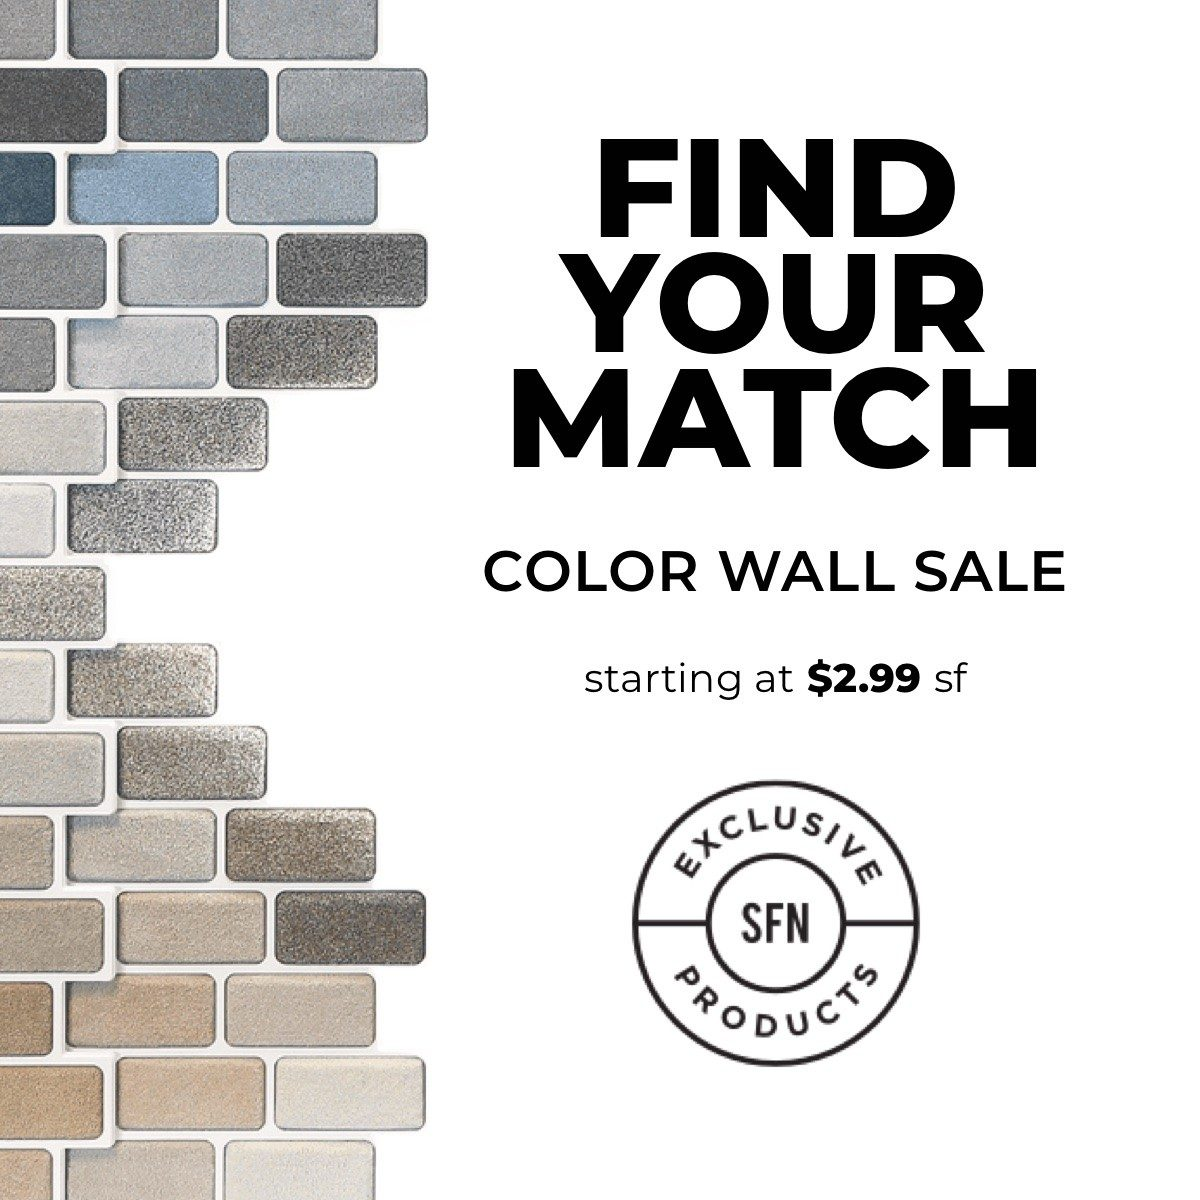 Shaw colorwall sale